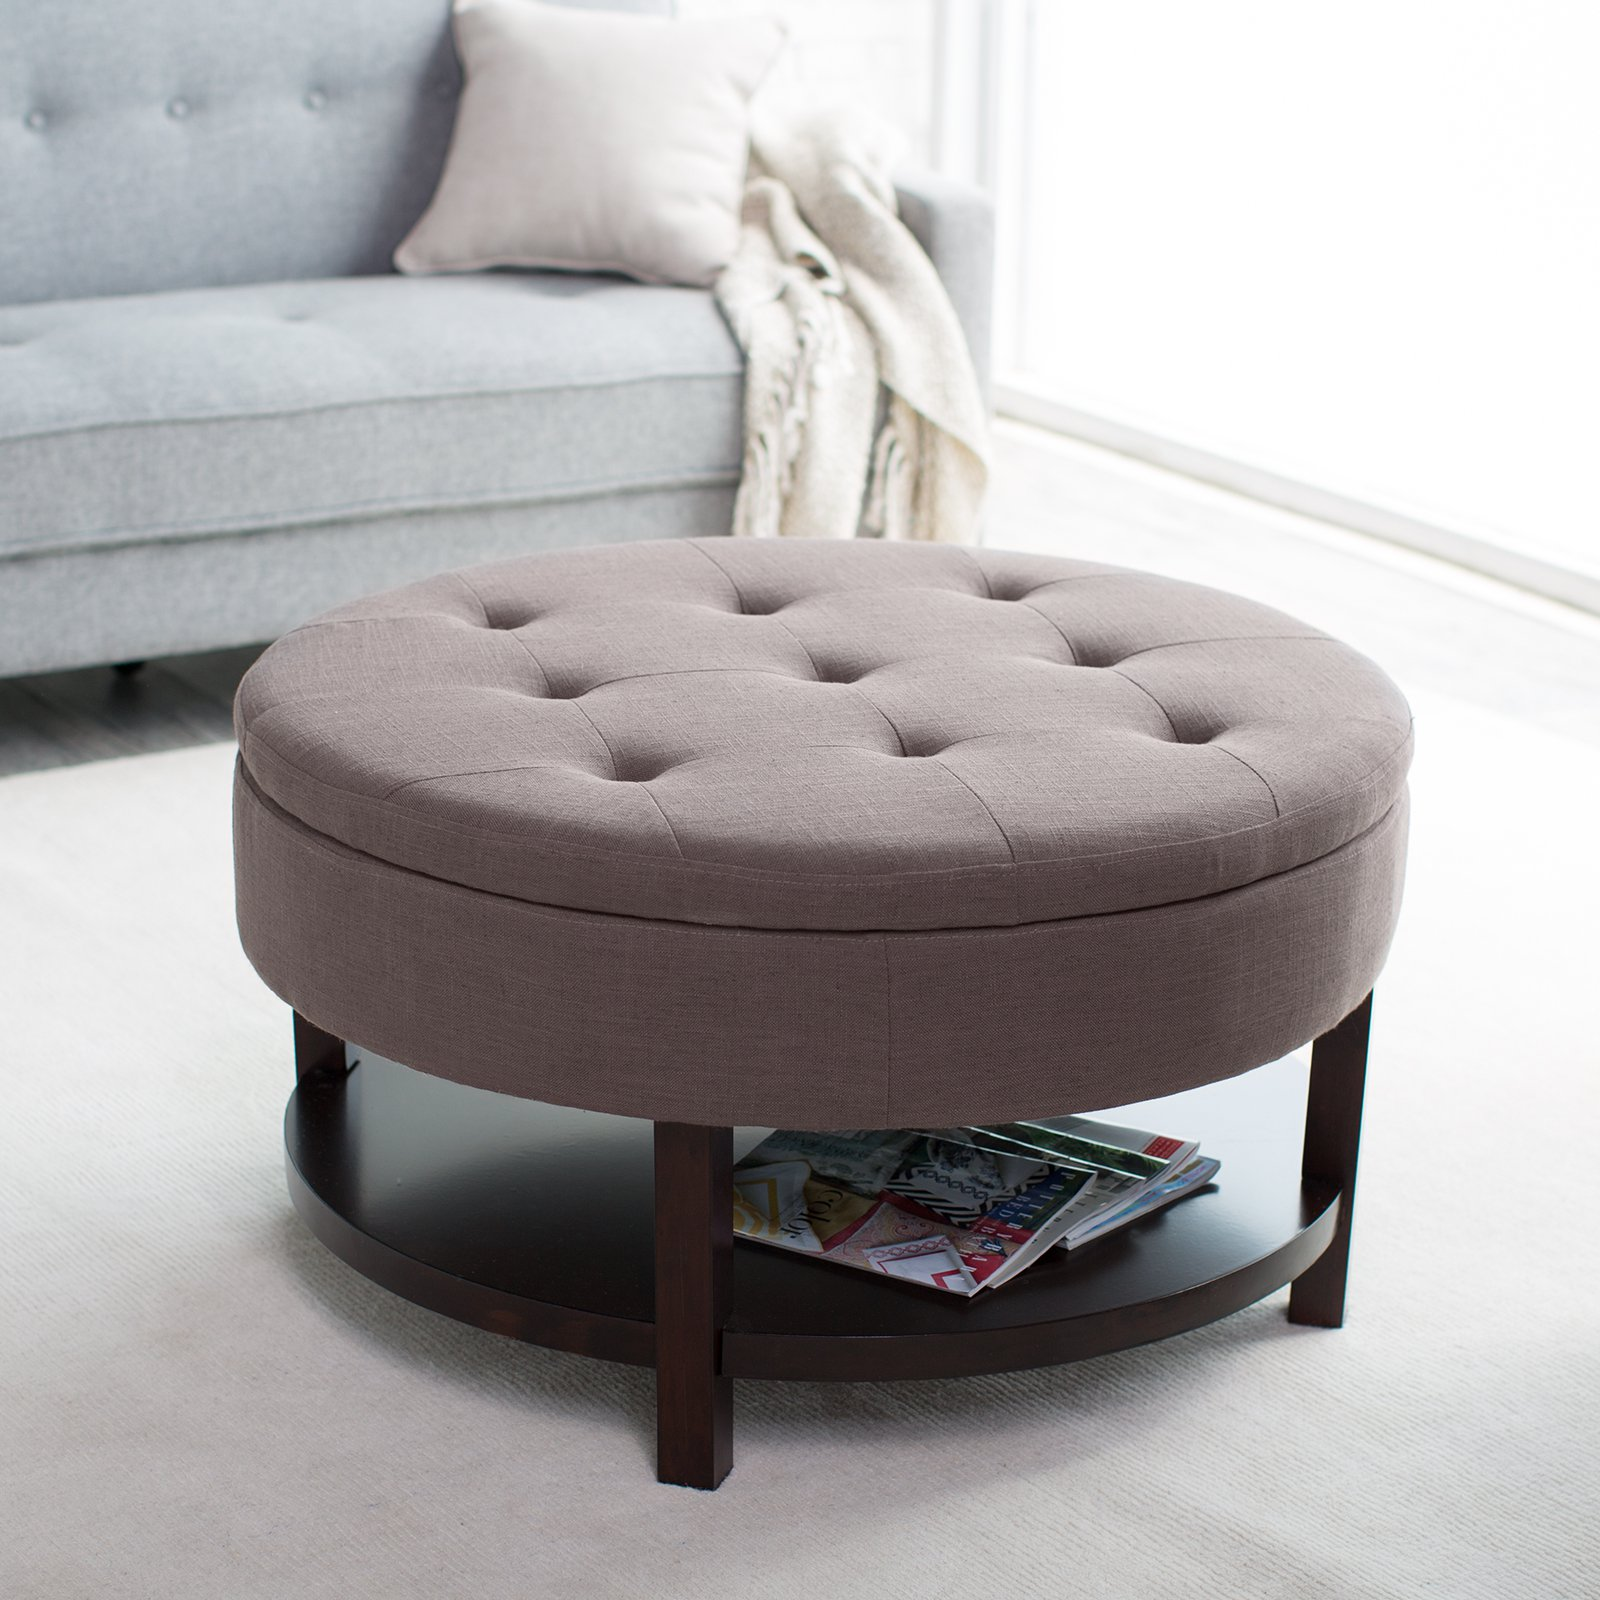 Elegant Grey Round Ottoman With Upholstered Style Suitable Contemporary Living Room Design With Funiture Also Inexpensive Furniture Round Ottomans Coffee Tables (Image 2 of 10)